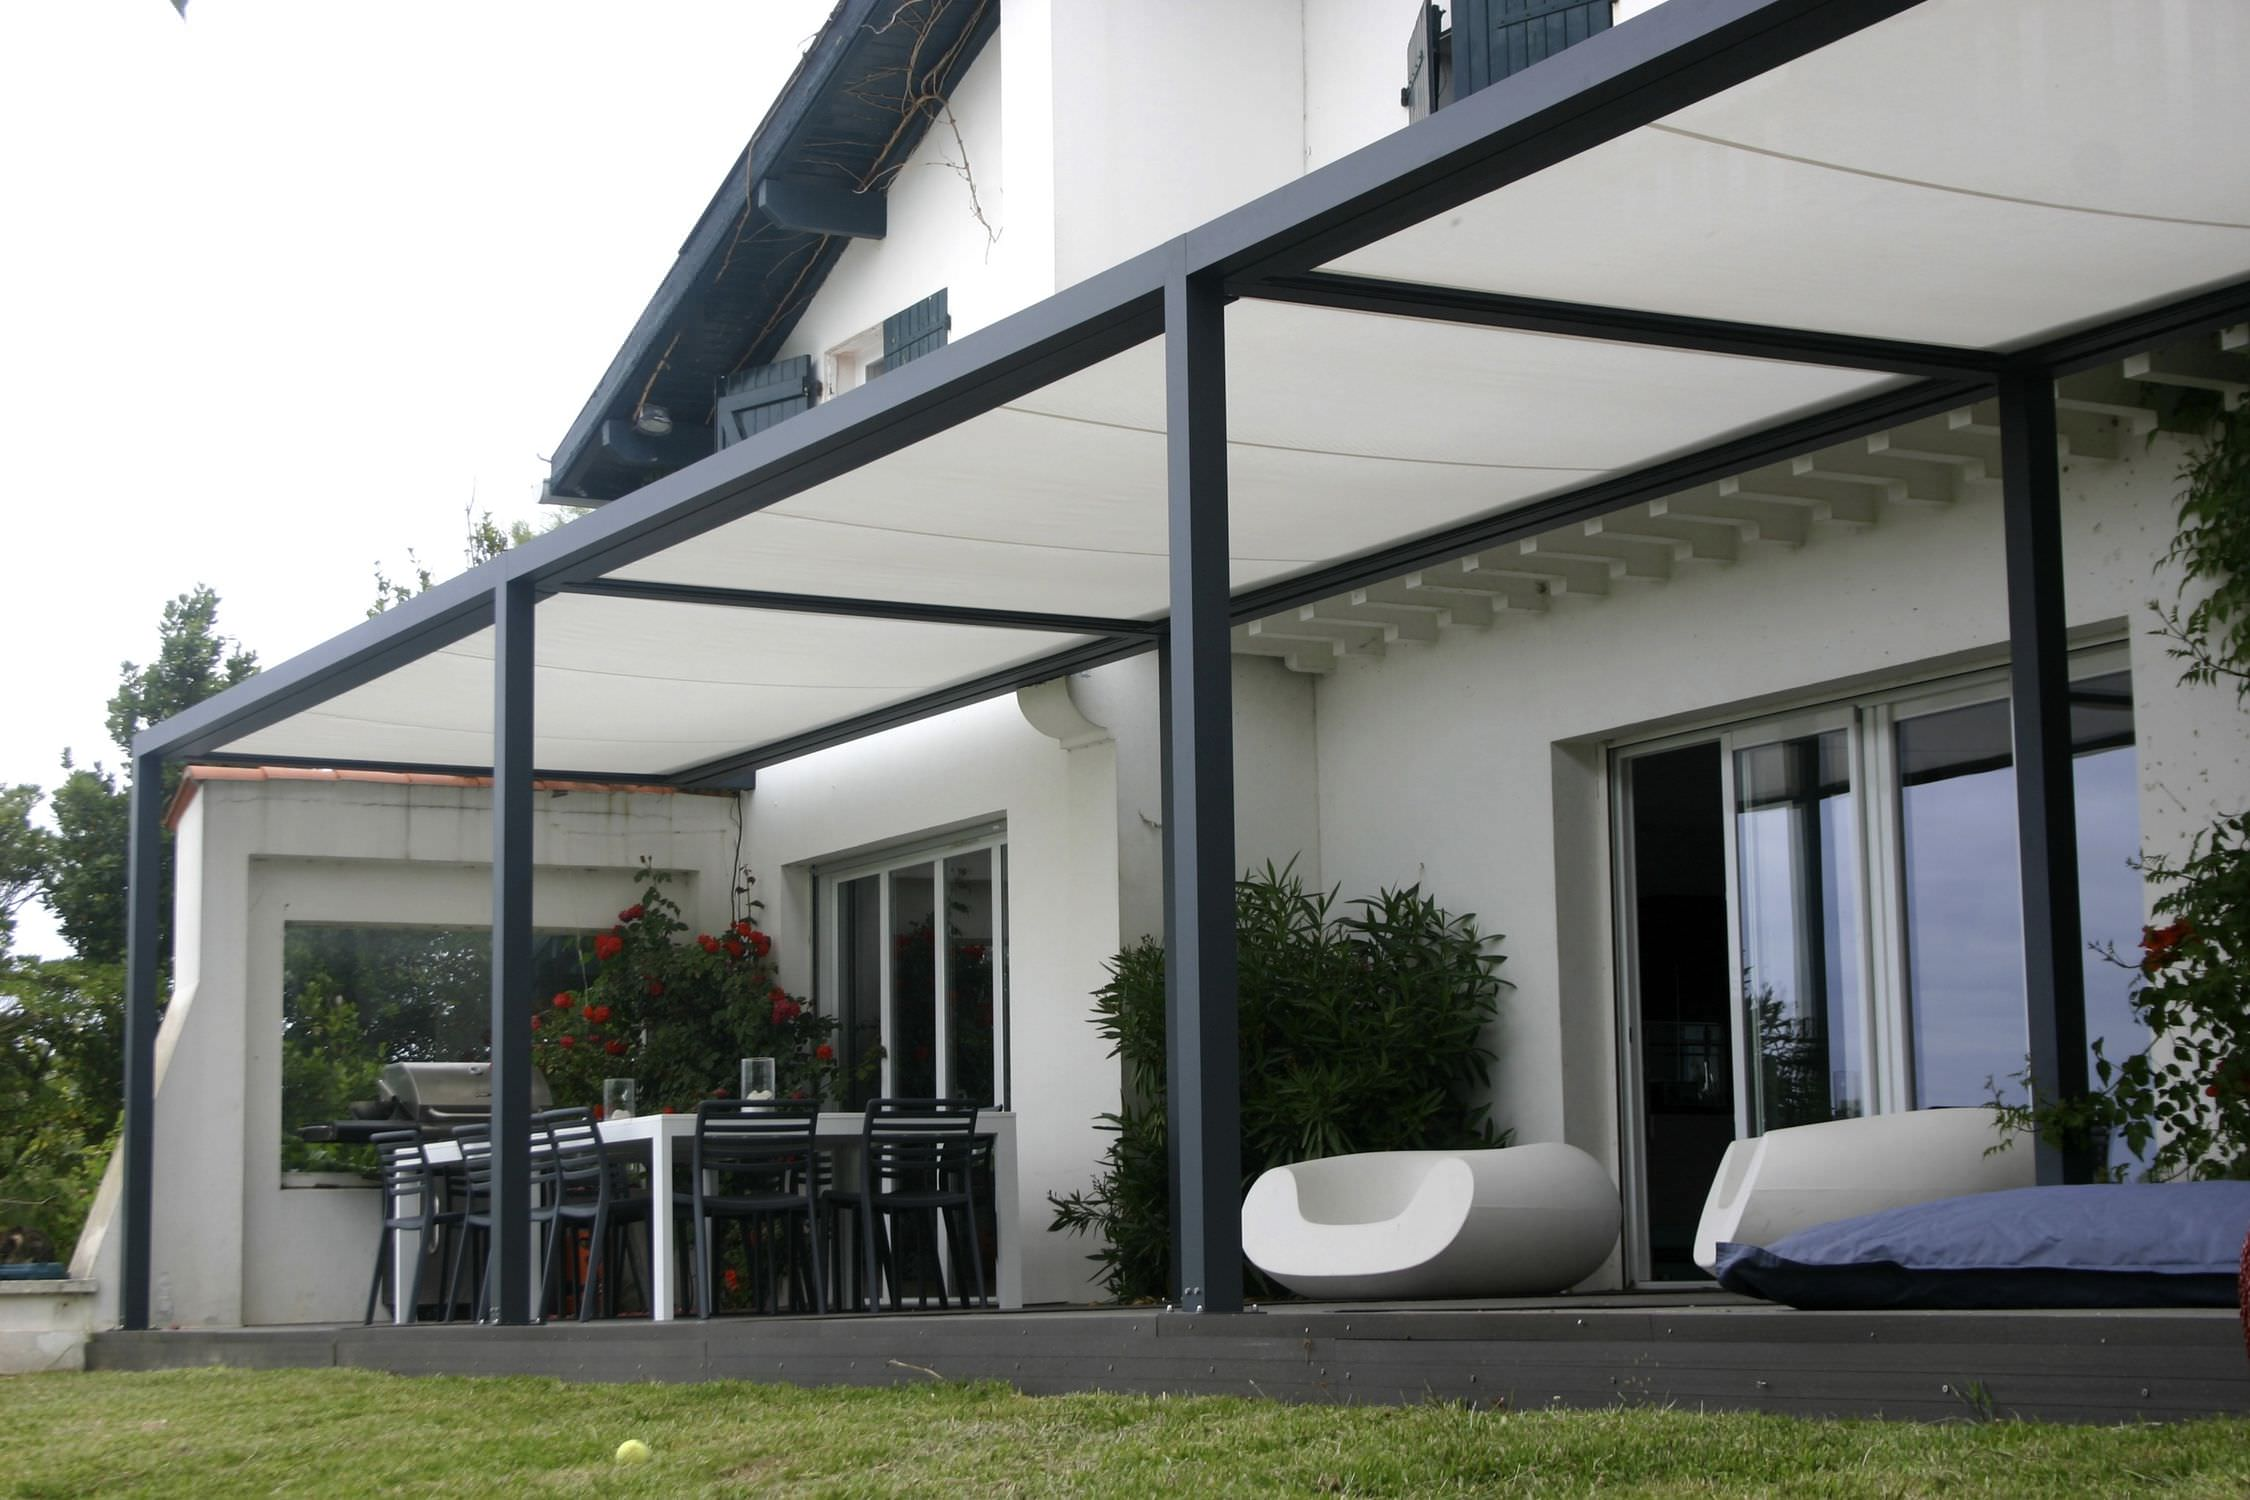 Backyard Patio Covers: From Usefulness To Style - HomesFeed on Backyard Patio Cover  id=97279